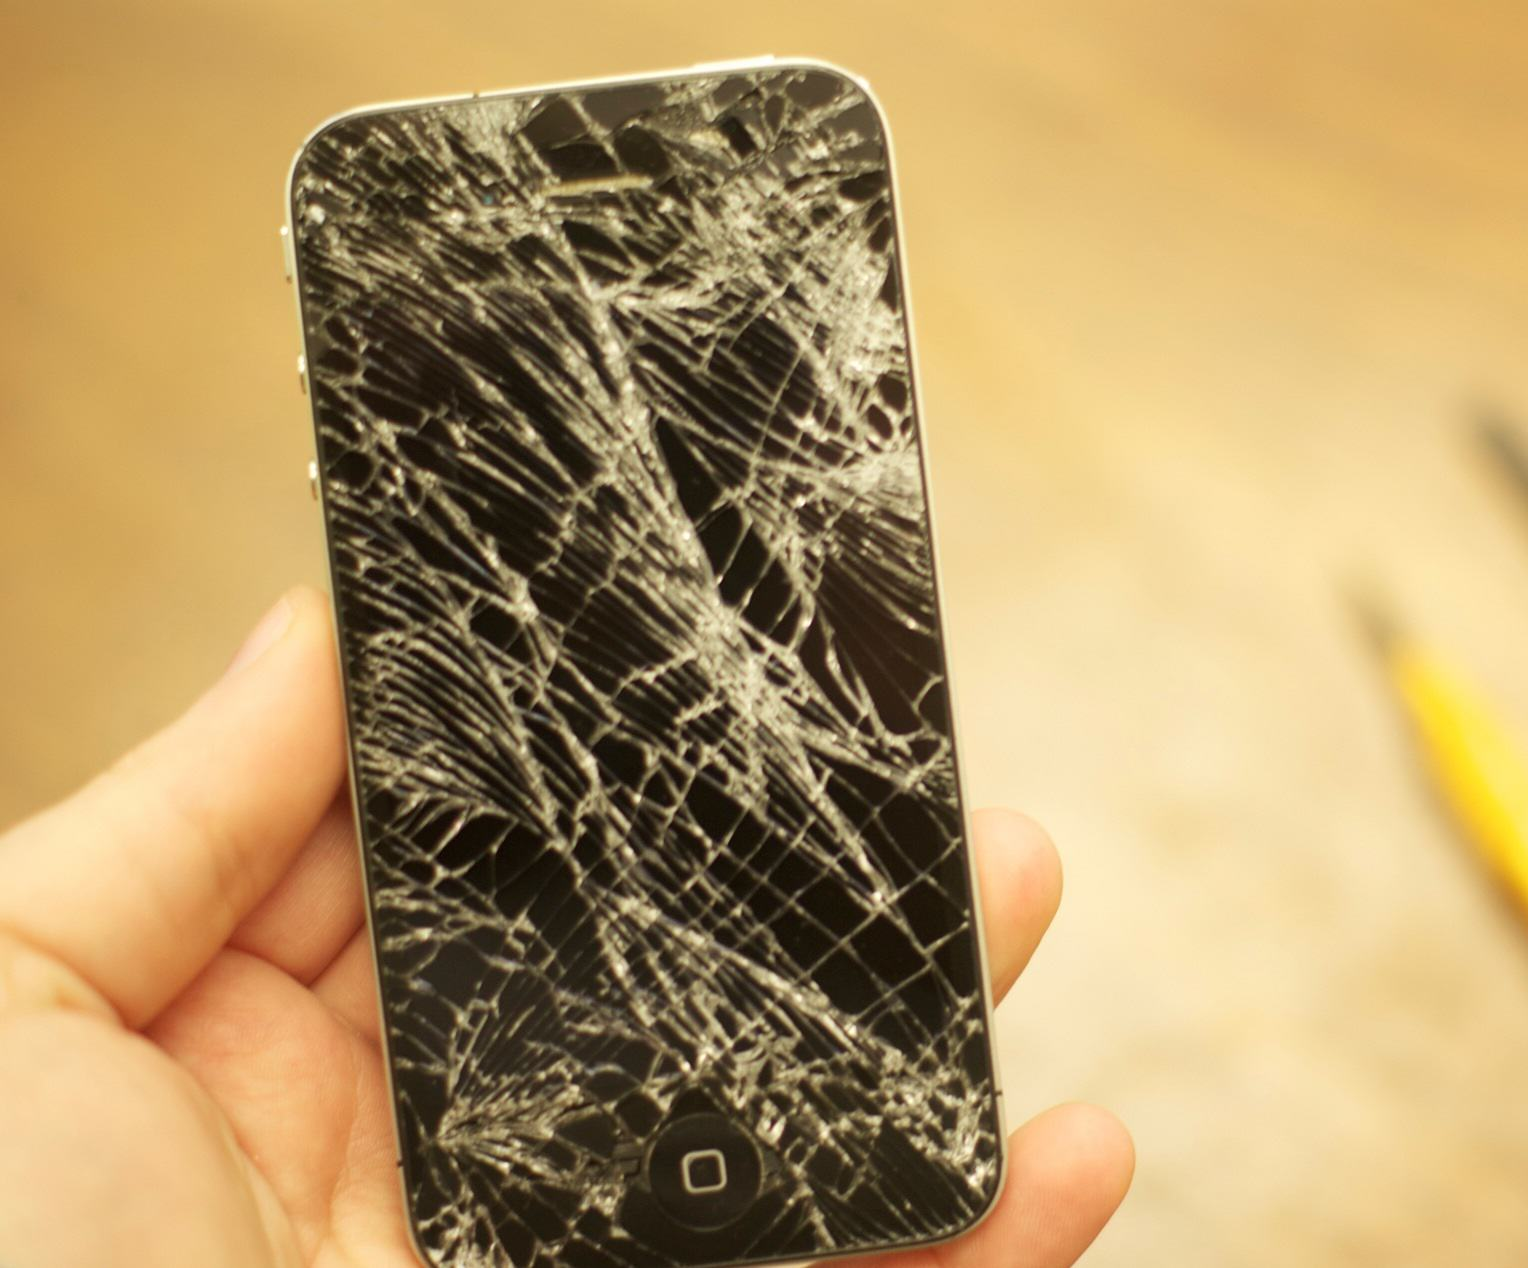 F*ck Phone Cases, Theres Actually A Mechanism To Make iPhones Shatterproof UNILAD iphone shatter proof 336026